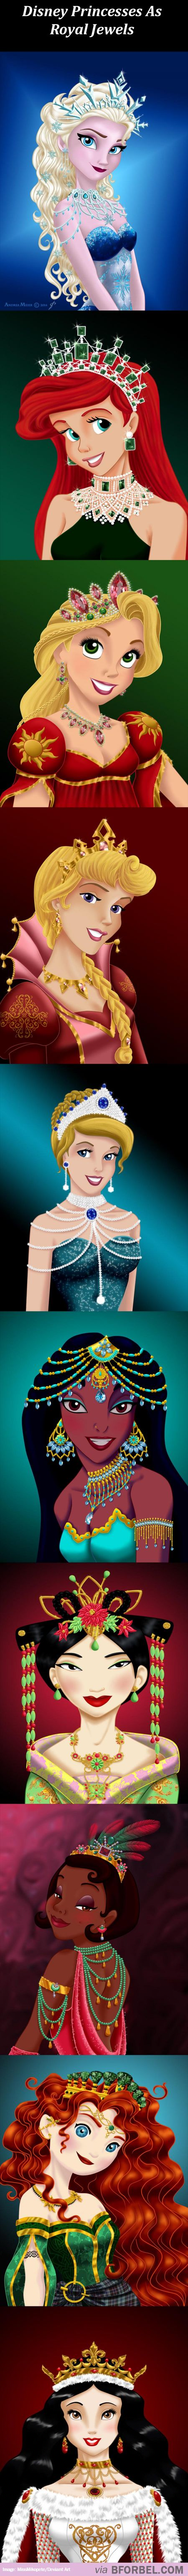 Disney princesses as jewels